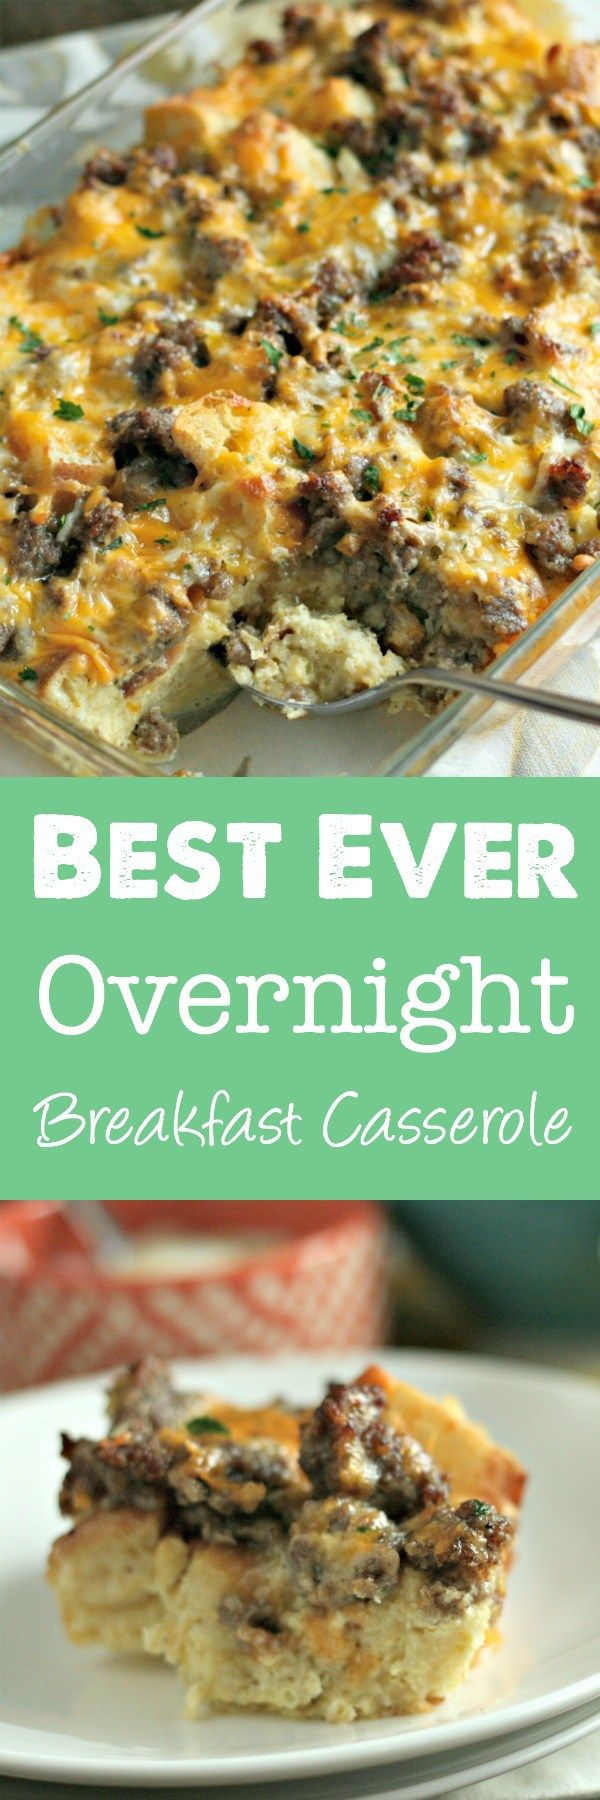 Search no more: this is the BEST overnight breakfast casserole! Using english muffins, sausage and eggs, this is perfect for a crowd and couldn't be easier to make! We love to make this for Christmas Morning or holidays like Easter! via @DashOfEvans